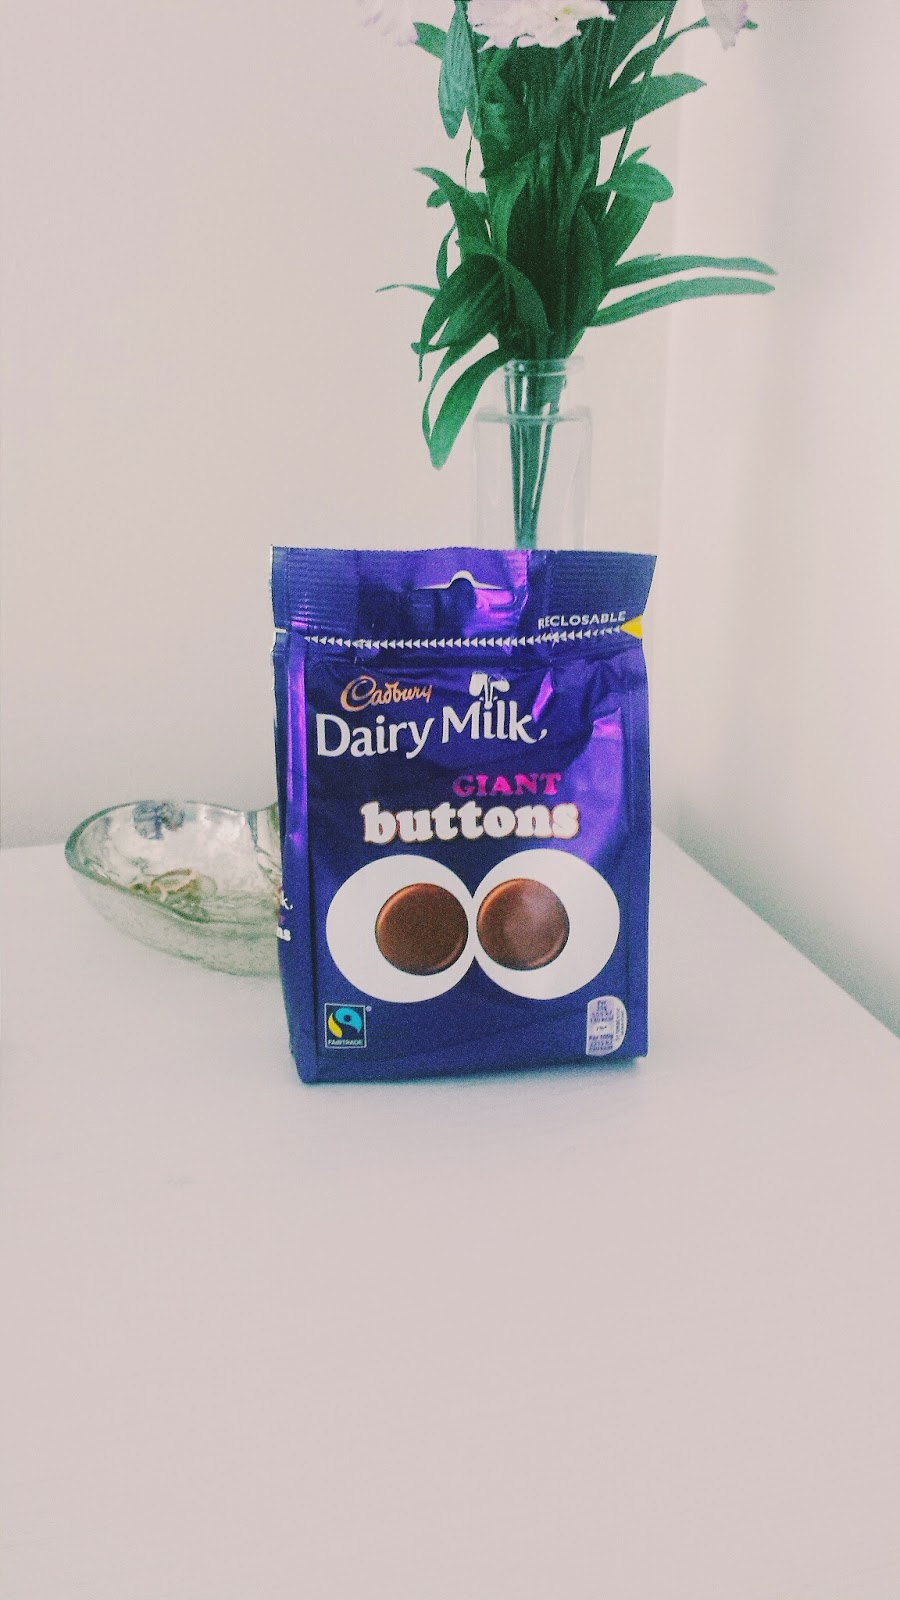 Dairy Milk Chocolate Giant Buttons